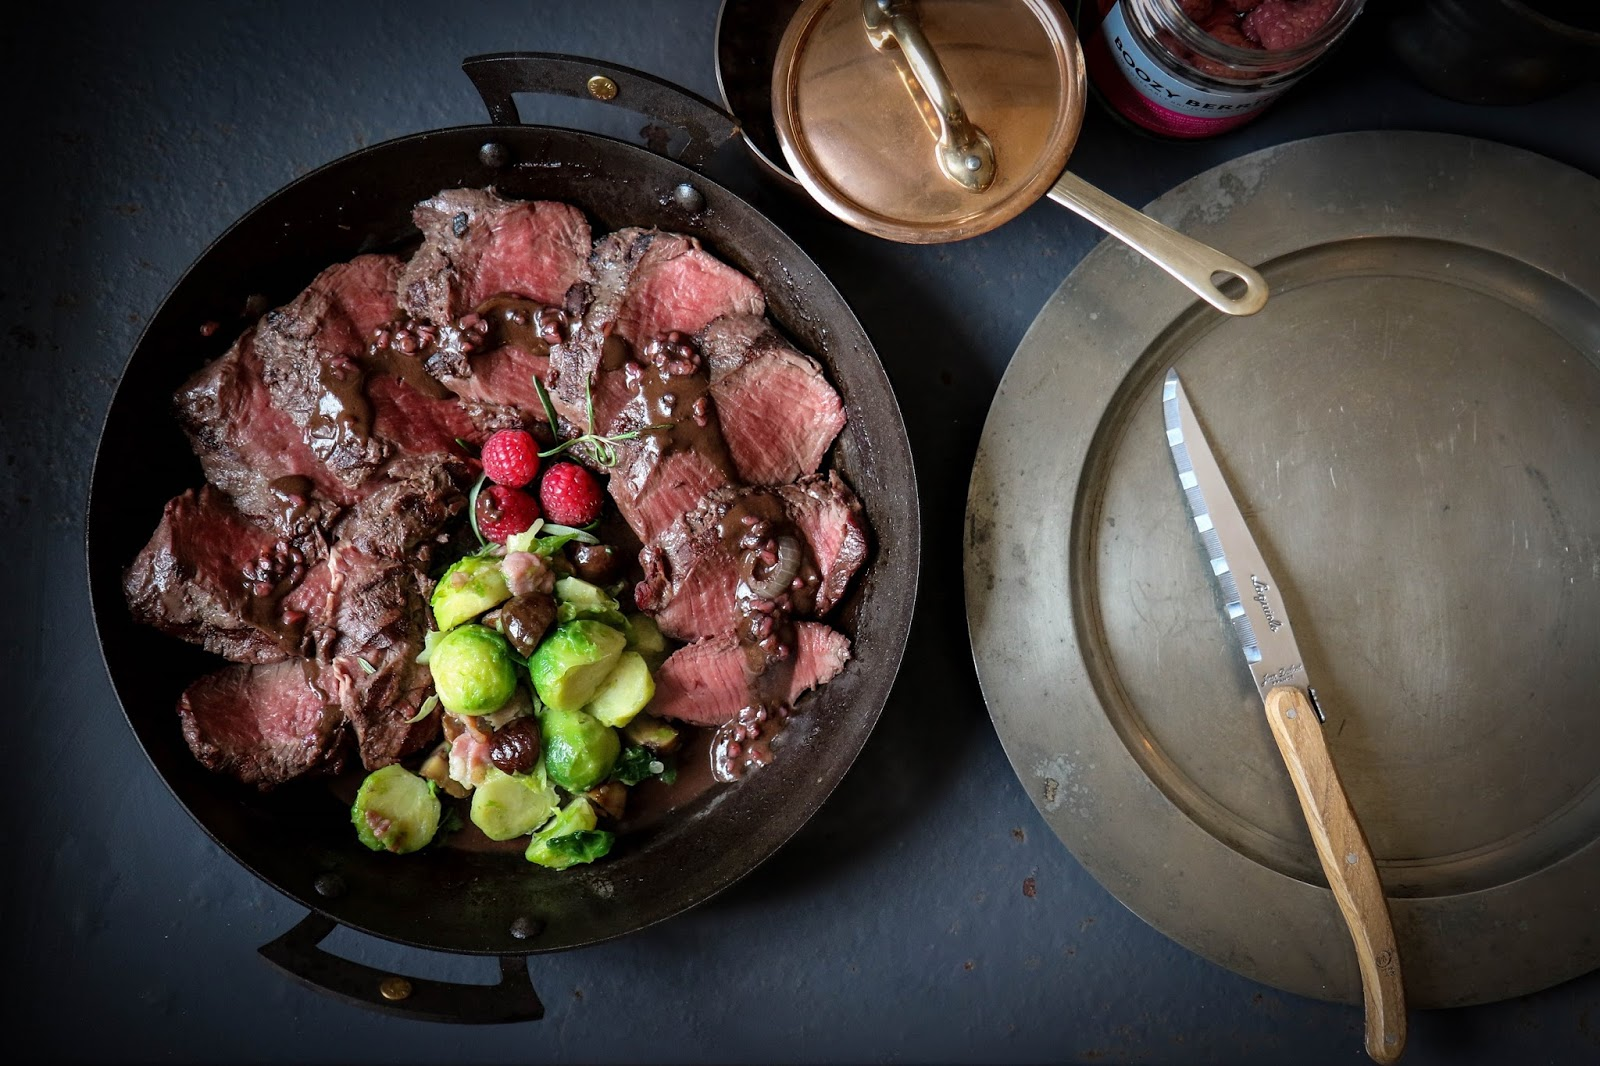 2 Dinner Date Recipes: Venison with Raspberry And Bitter Chocolate Sauce And A Boozy Berries Trifle